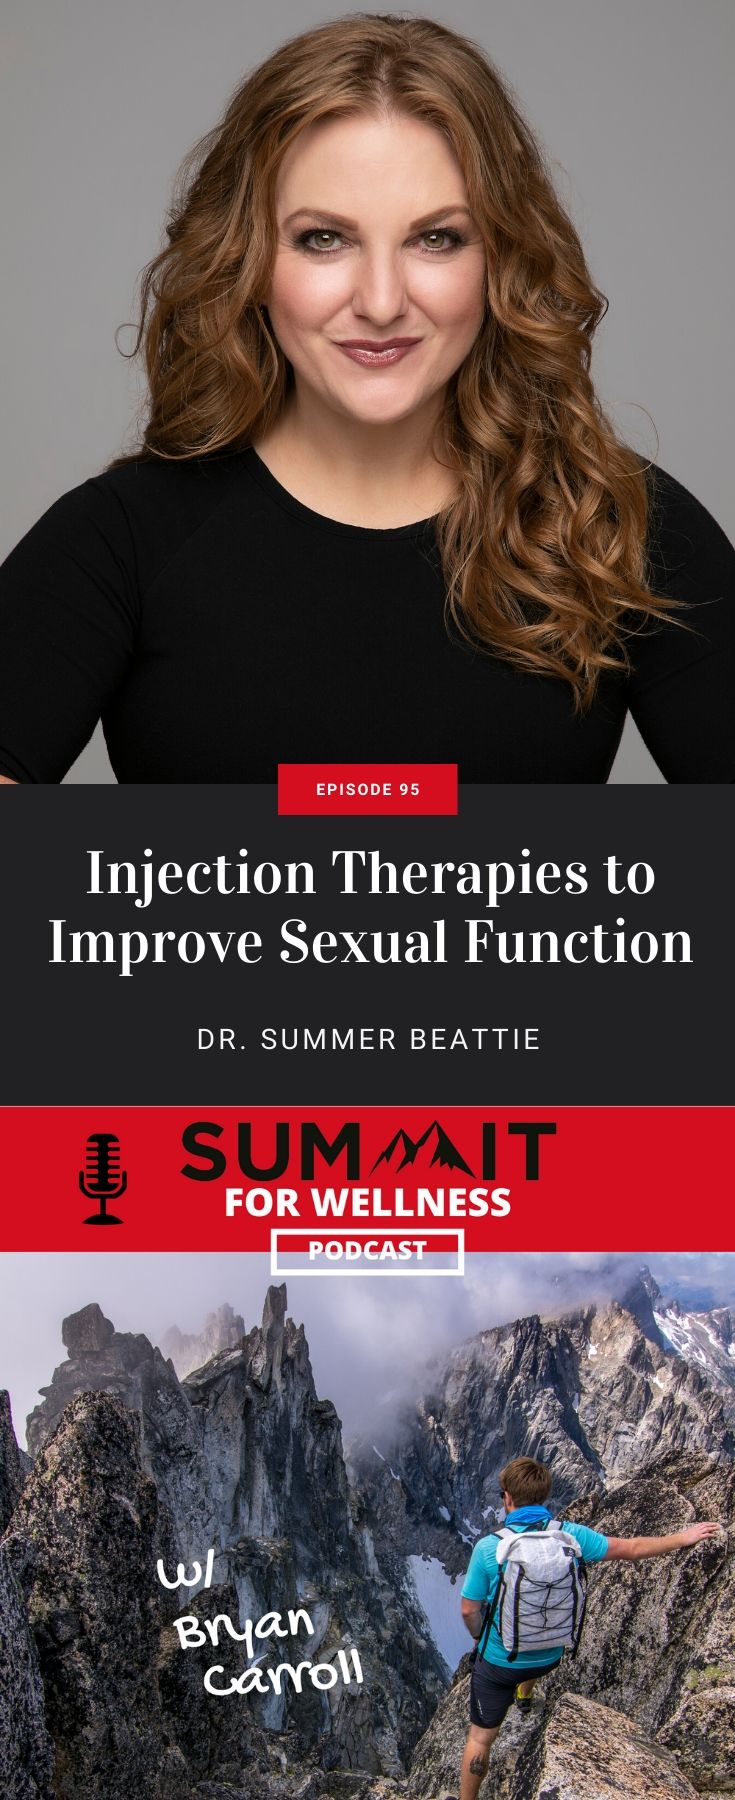 Dr. Summer Beattie teaches how to use injection therapies like PRP to improve sexual function